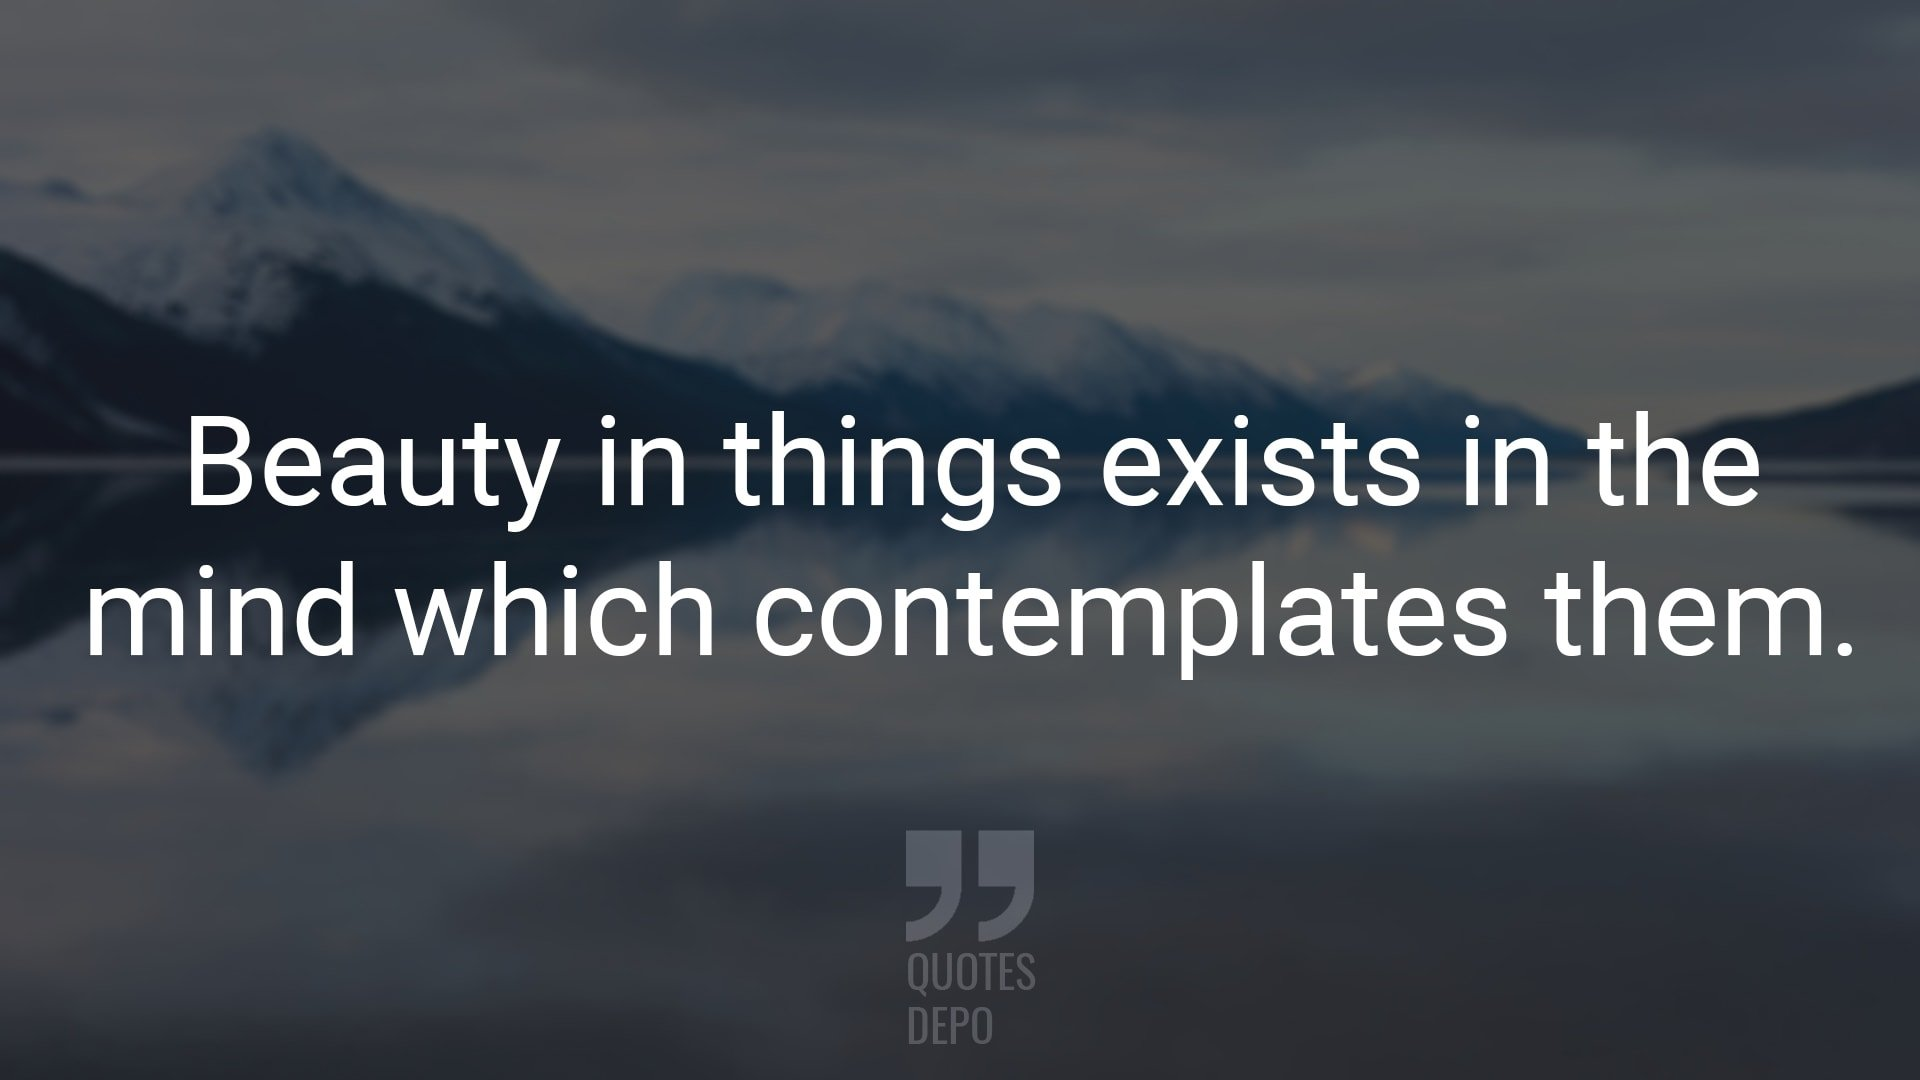 Beauty in Things Exists in the Mind